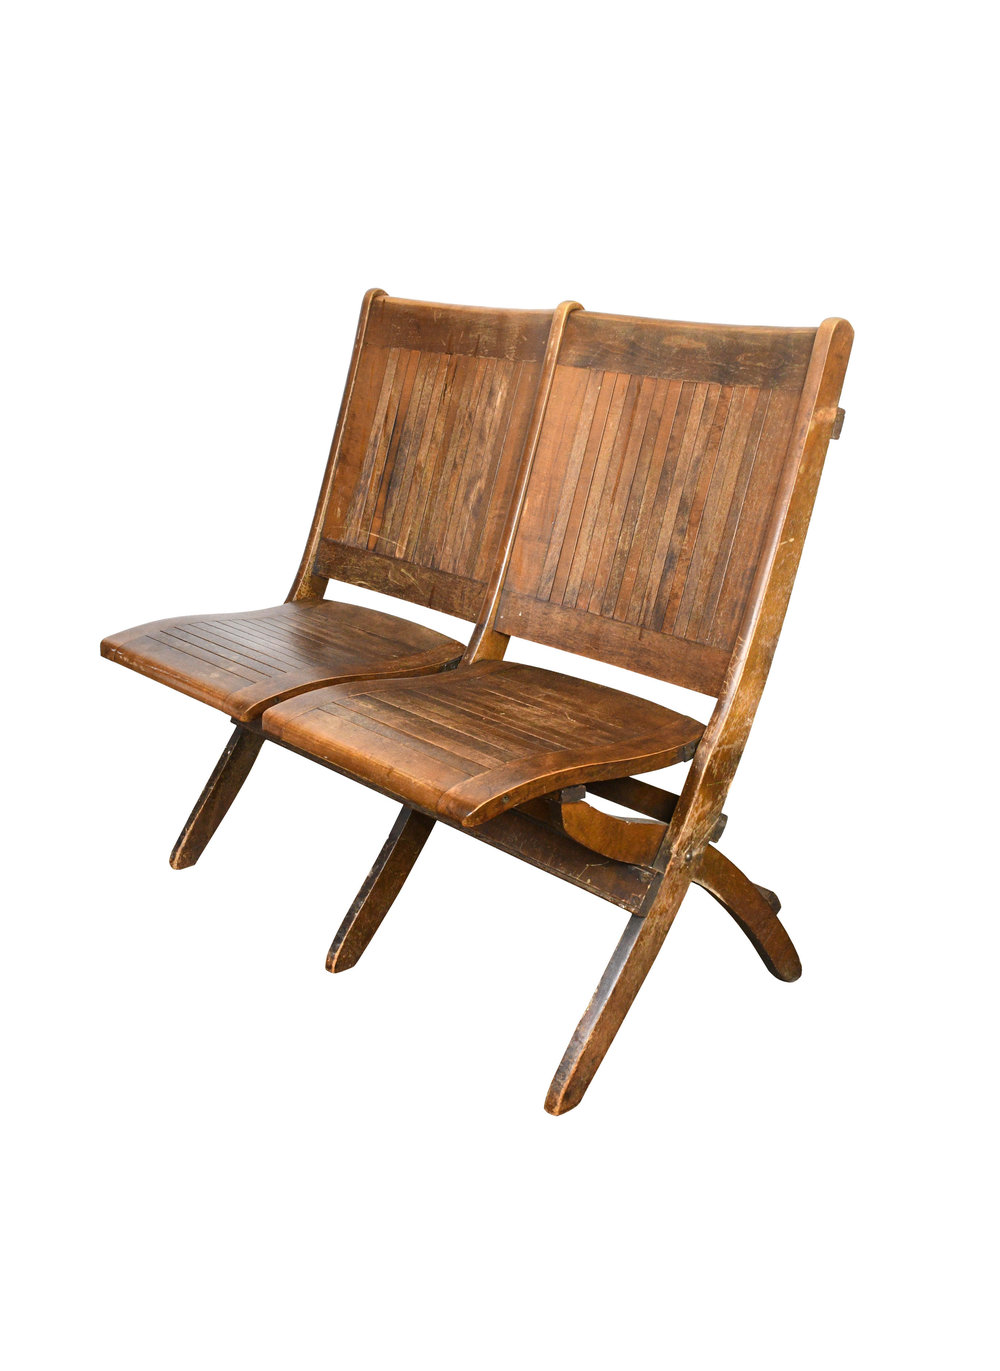 Wood Slat Double Folding Chair   Quantity Available